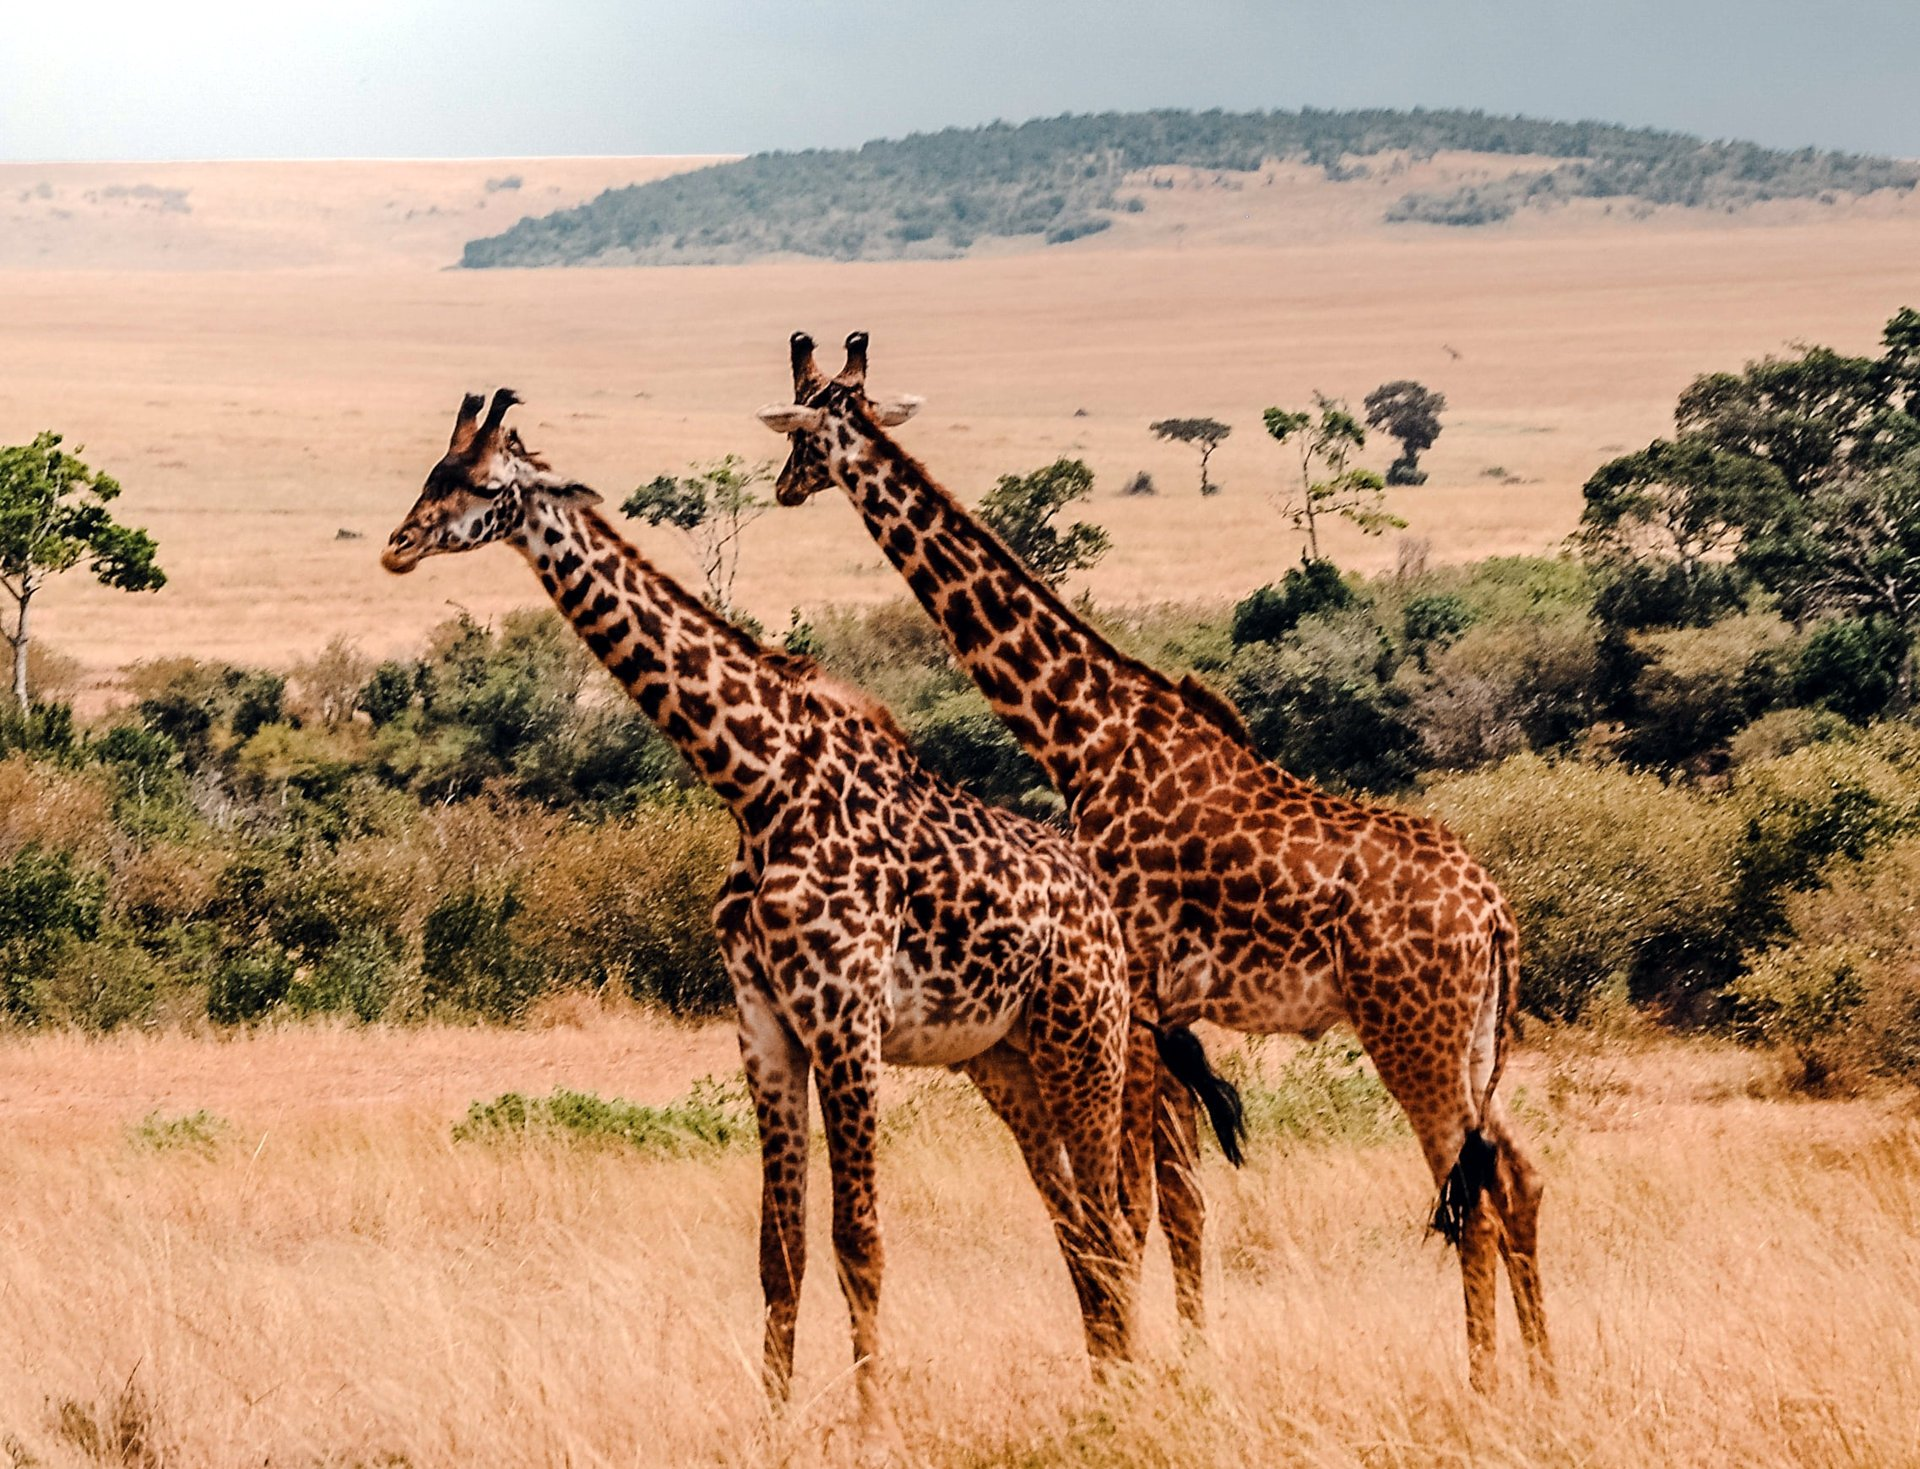 The best place to spot Giraffes: Masai Mara National Park.